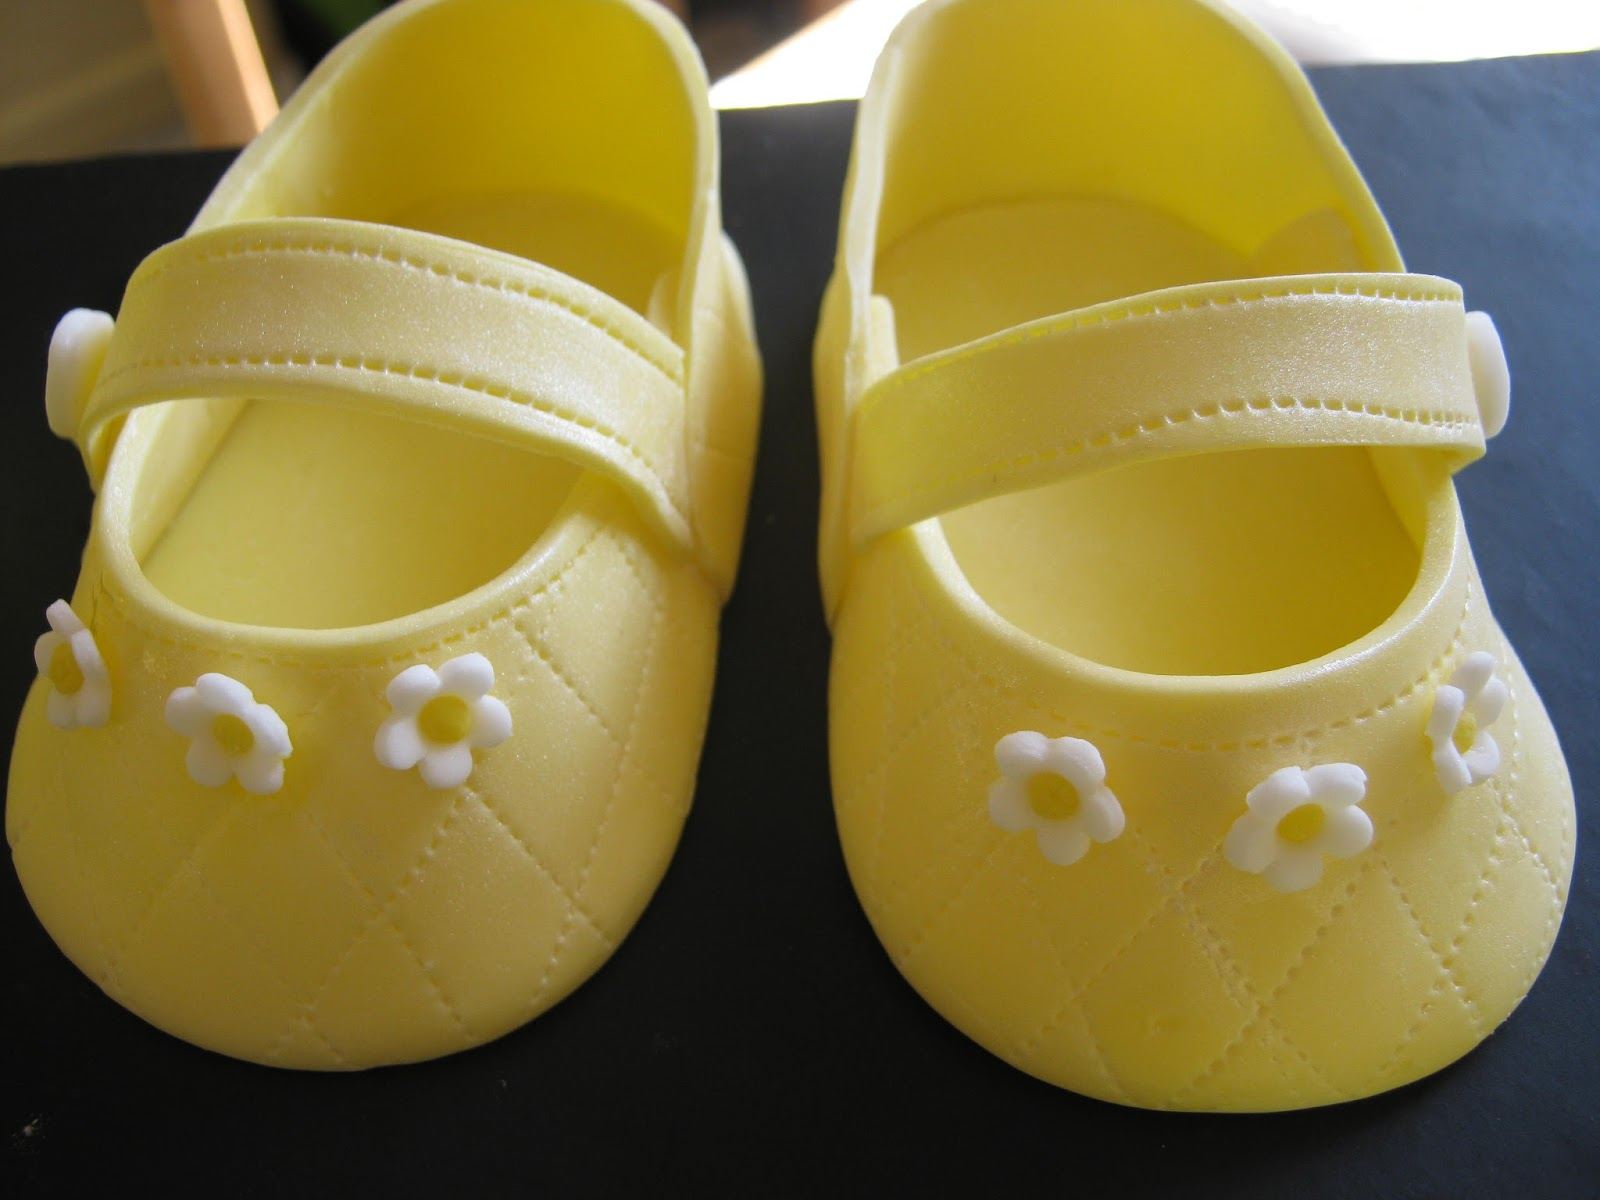 Cake Decorating Baby Shoe Template : Annie s Appetite: Making Gumpaste Baby Shoes